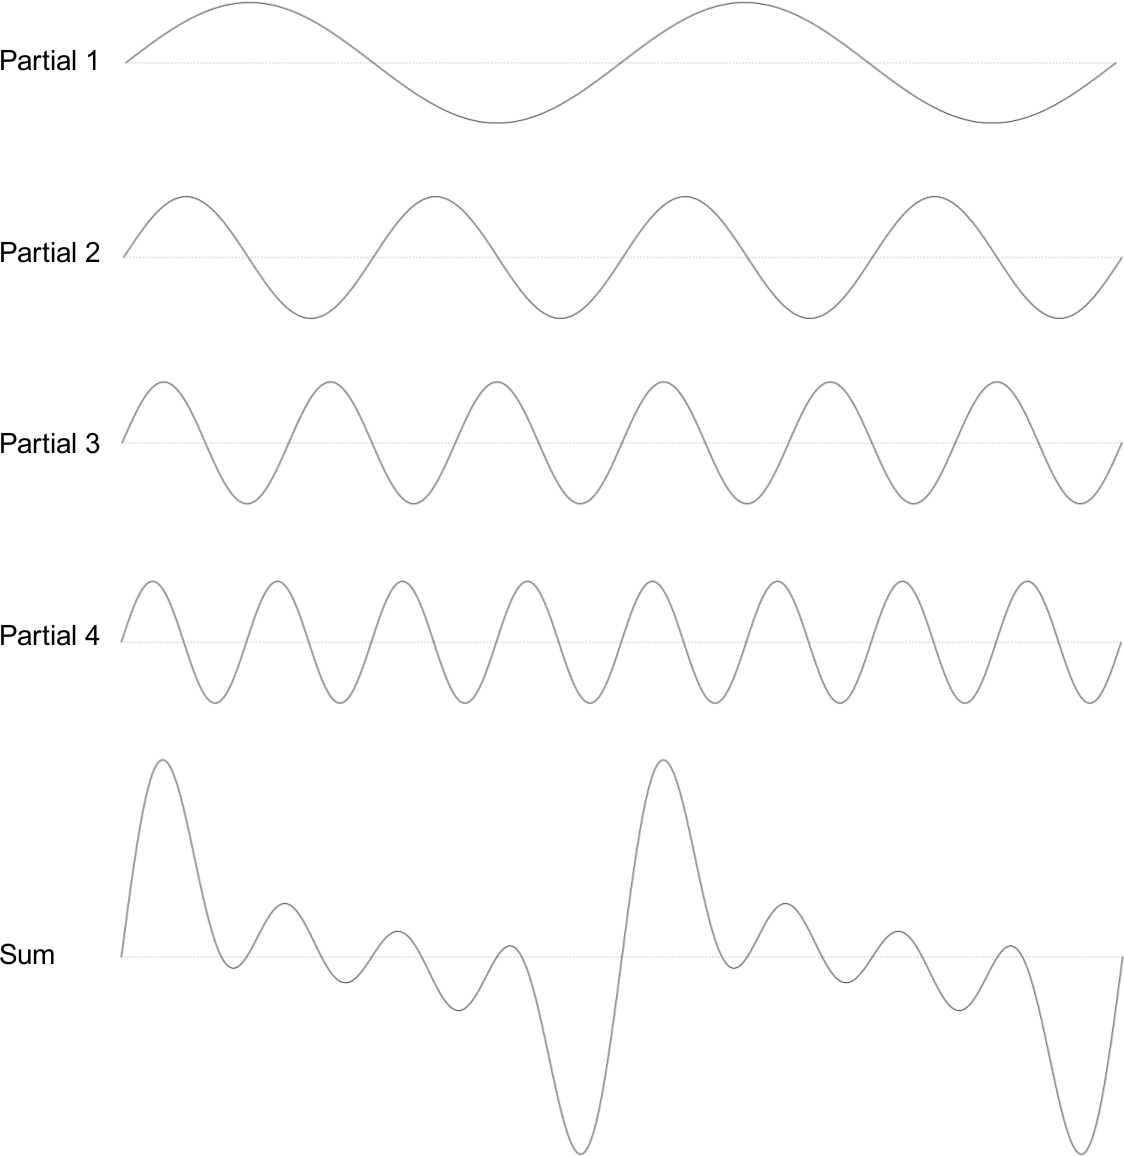 Chapter A Additive Synthesis Csound Gto Sawtooth Wave Generator Above You See Four Sine Waves Each With Fixed Frequency And Amplitude Relationships These Are Then Mixed Together The Resulting Waveform Illustrated